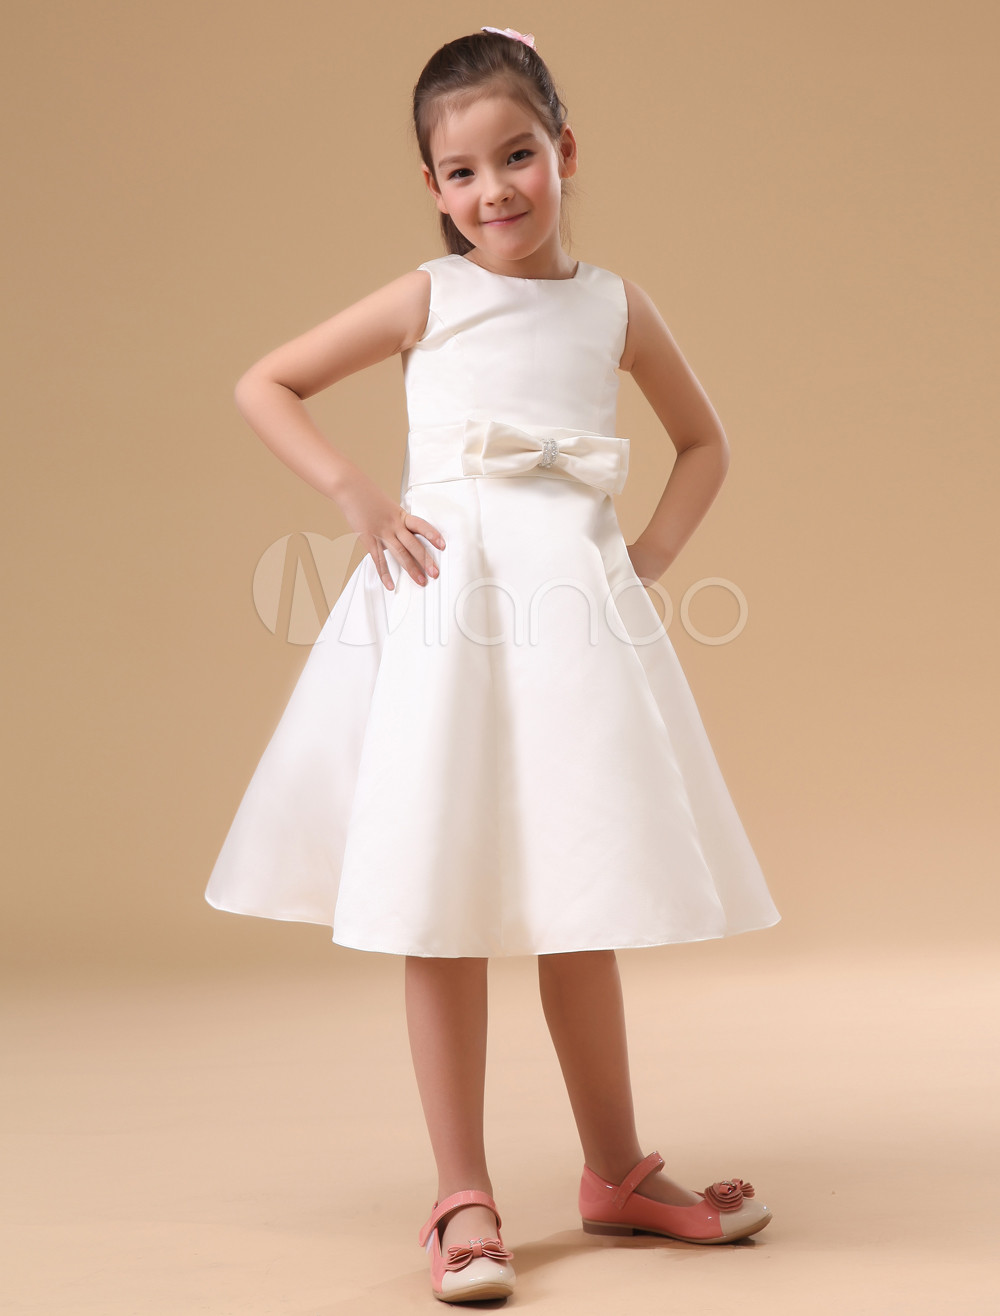 ФОТО A-Line Flower Girls Dresses For Wedding Gowns Mid-Calf  Kids Prom Dresses Bow  Glitz Pageant Dresses for Little Girls